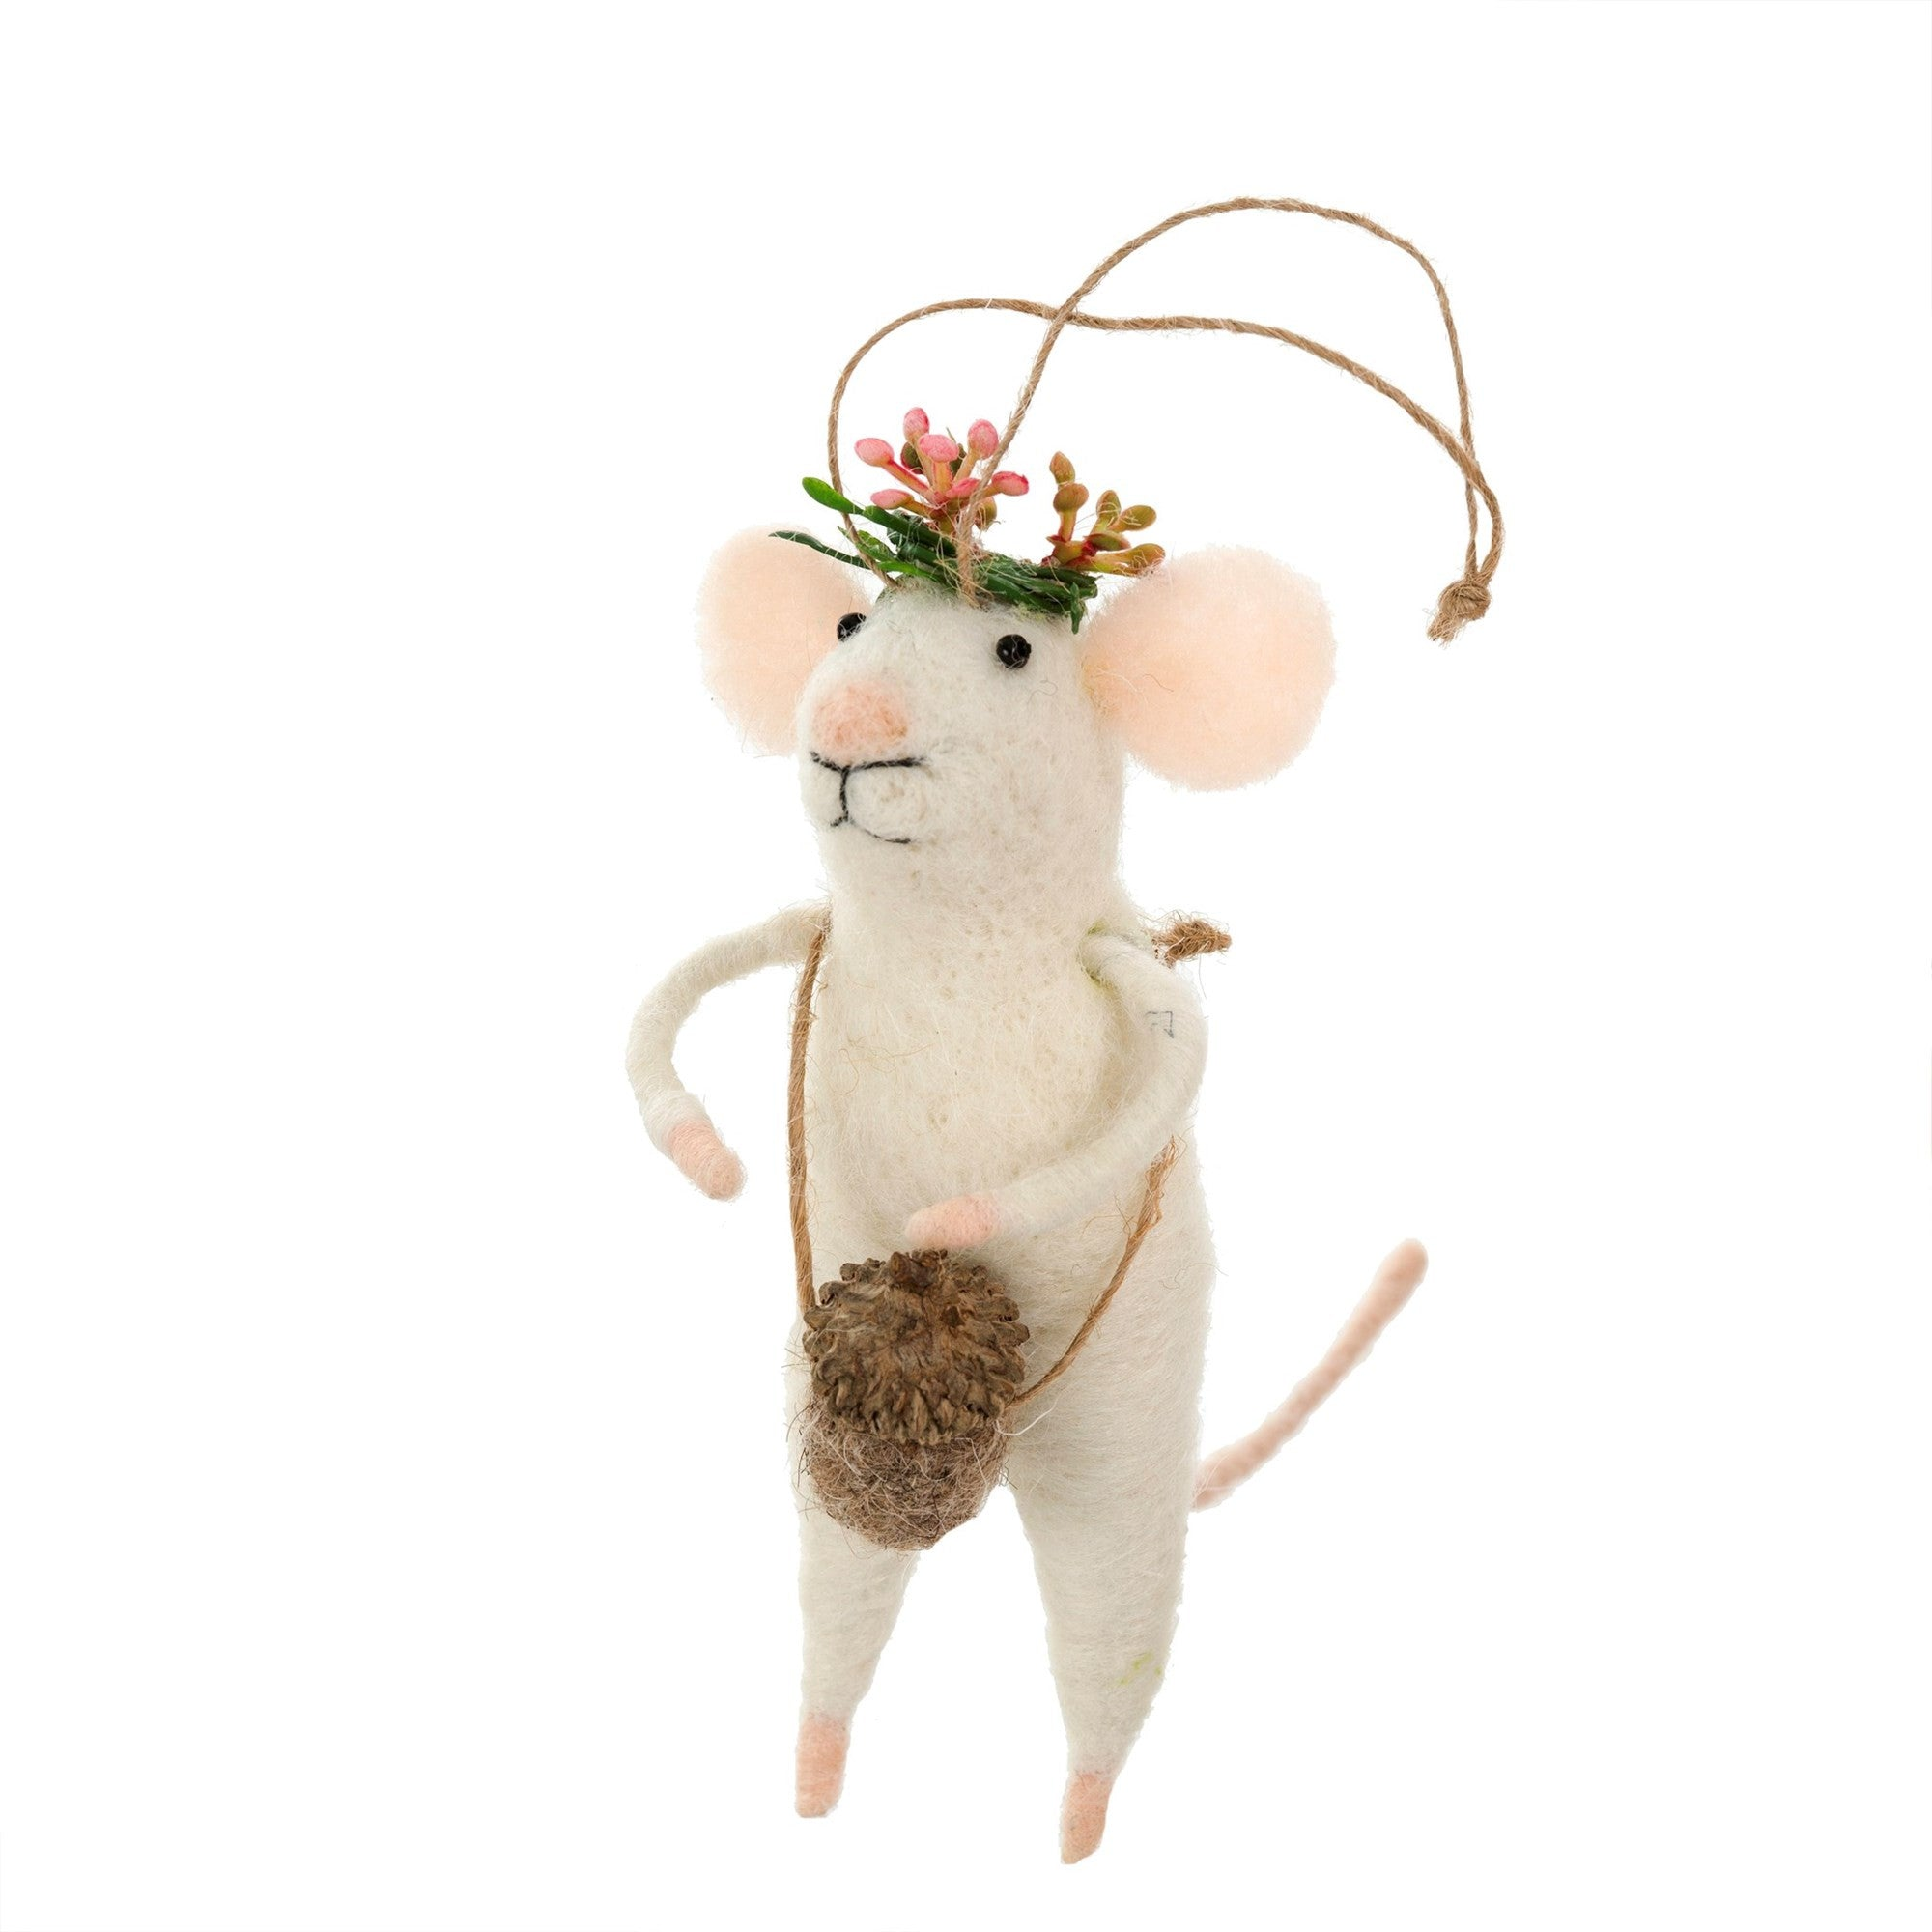 Coachella Mouse Felted Mouse Ornament  Decorations  It Indaba Trading